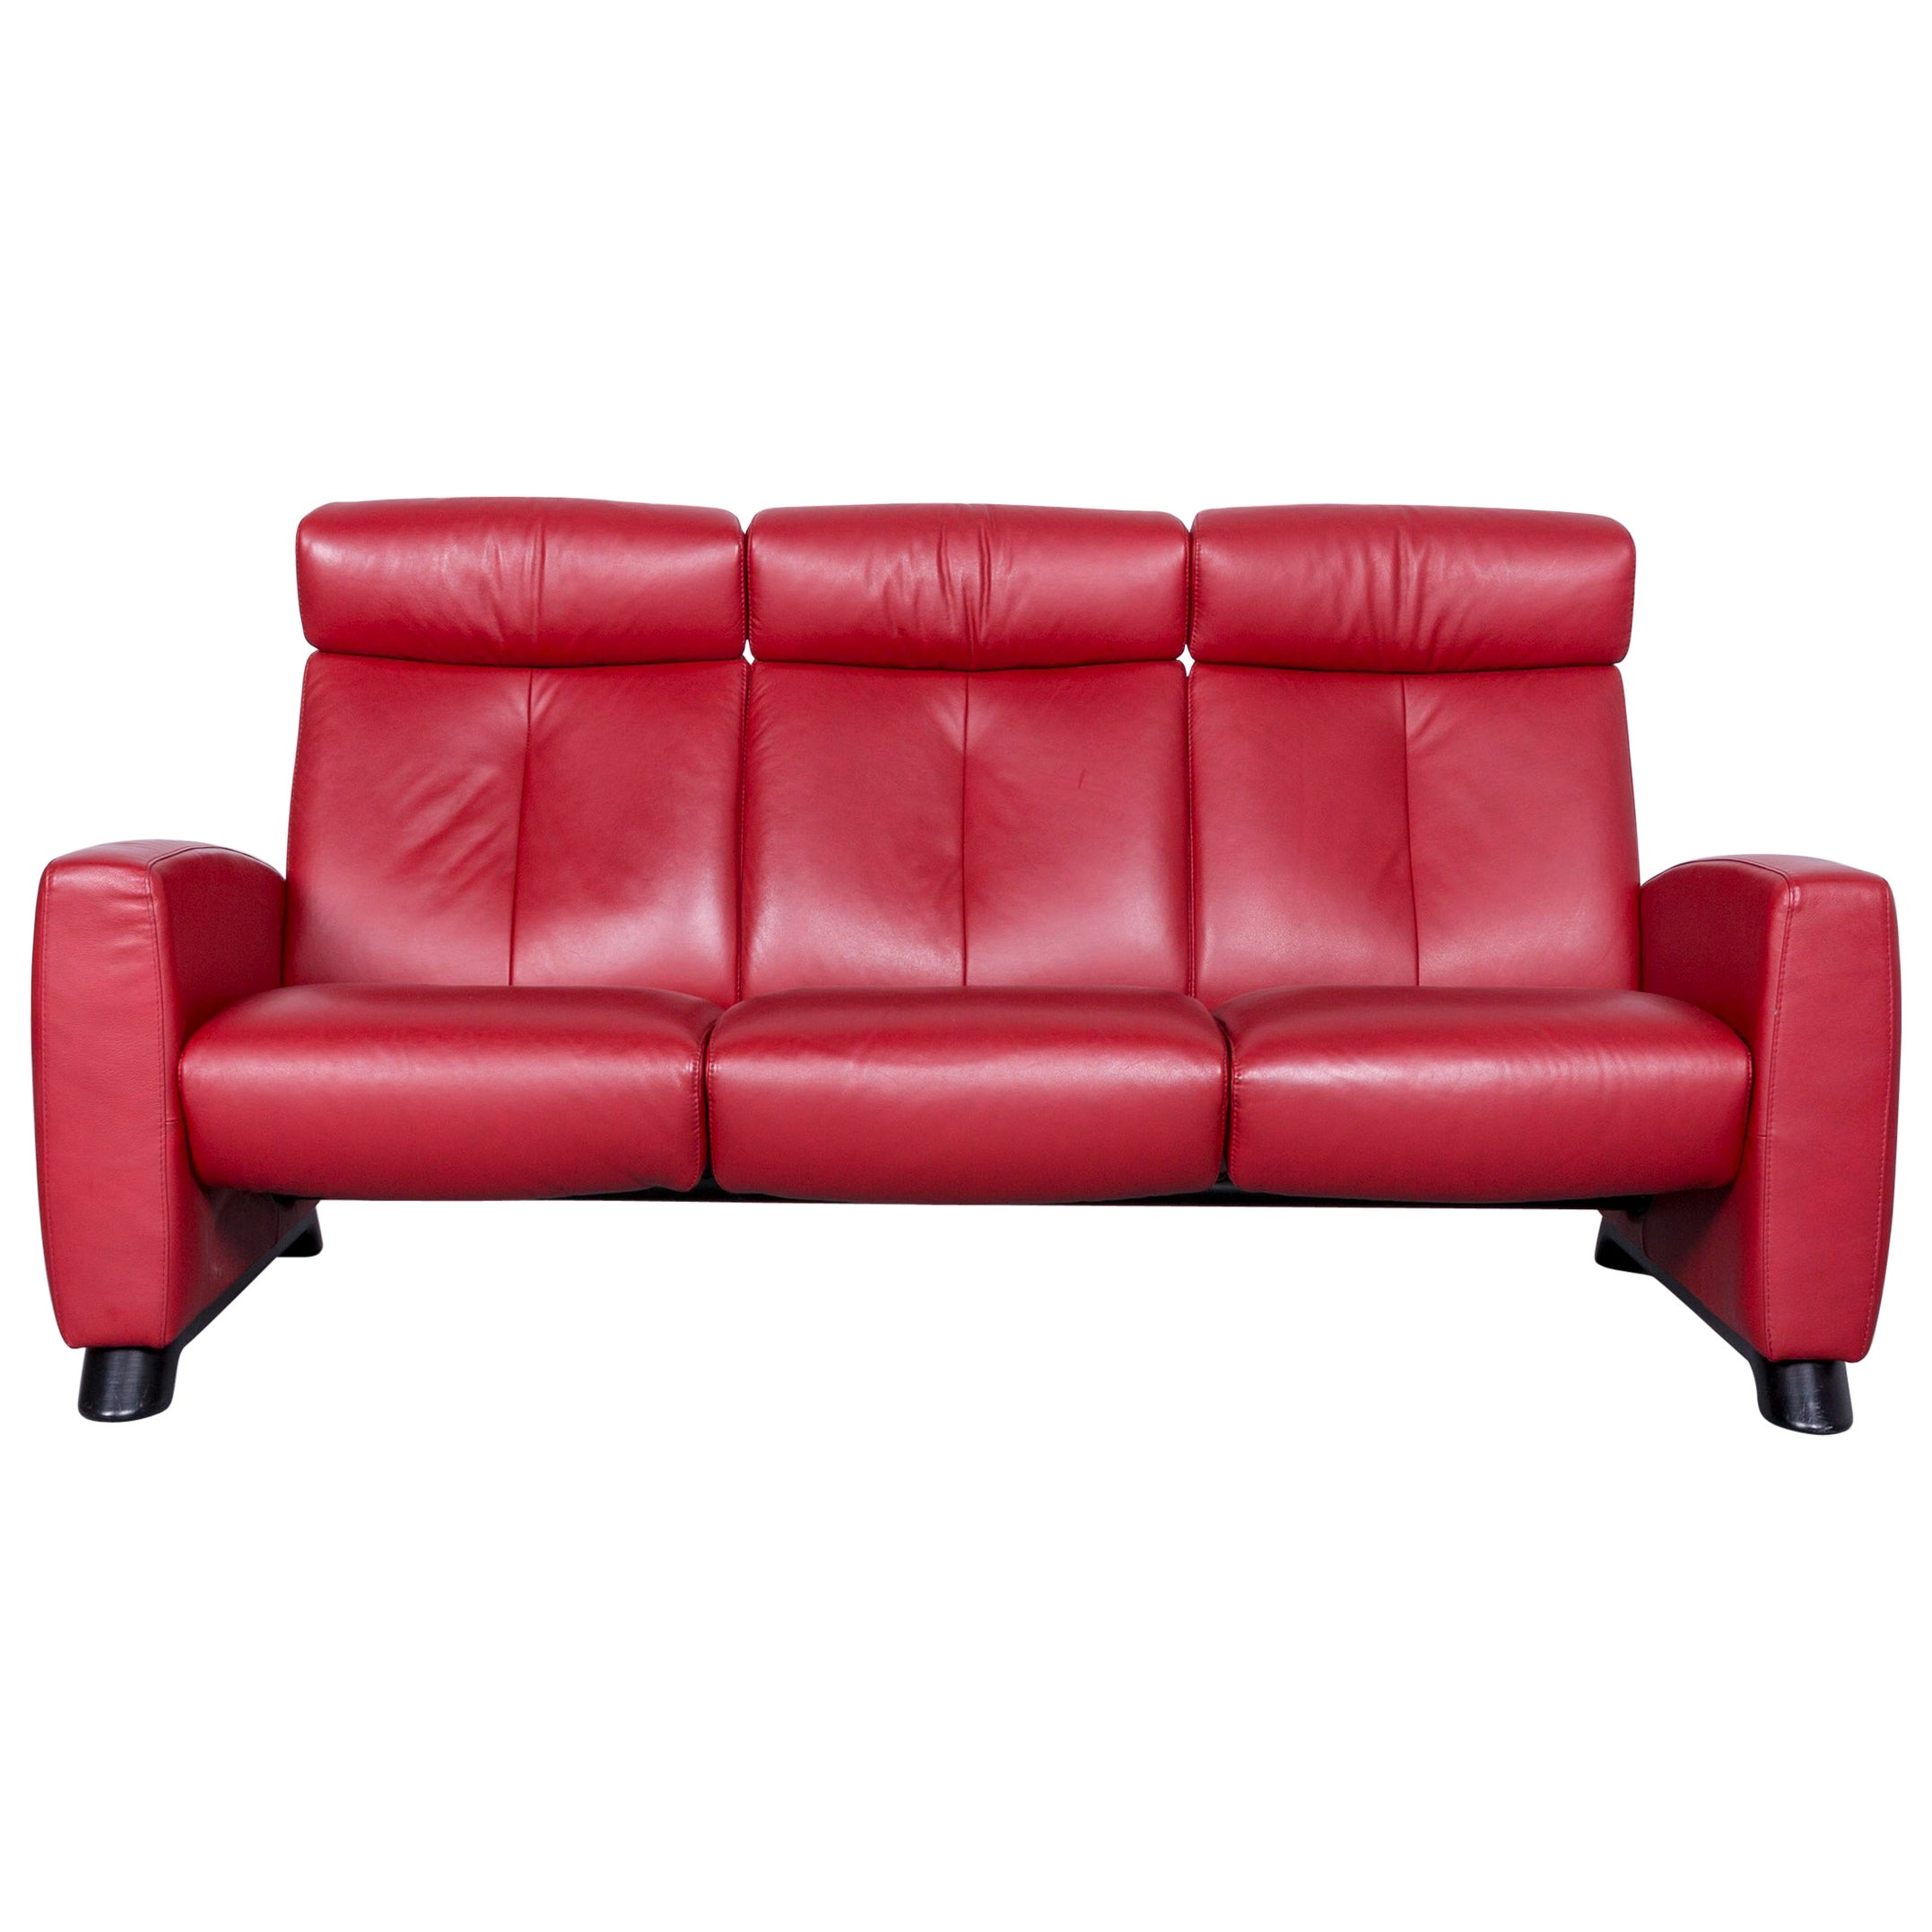 Ekornes Sofa Ekornes Stressless Relax Sofa Red Leather Tv Recliner Two Seat